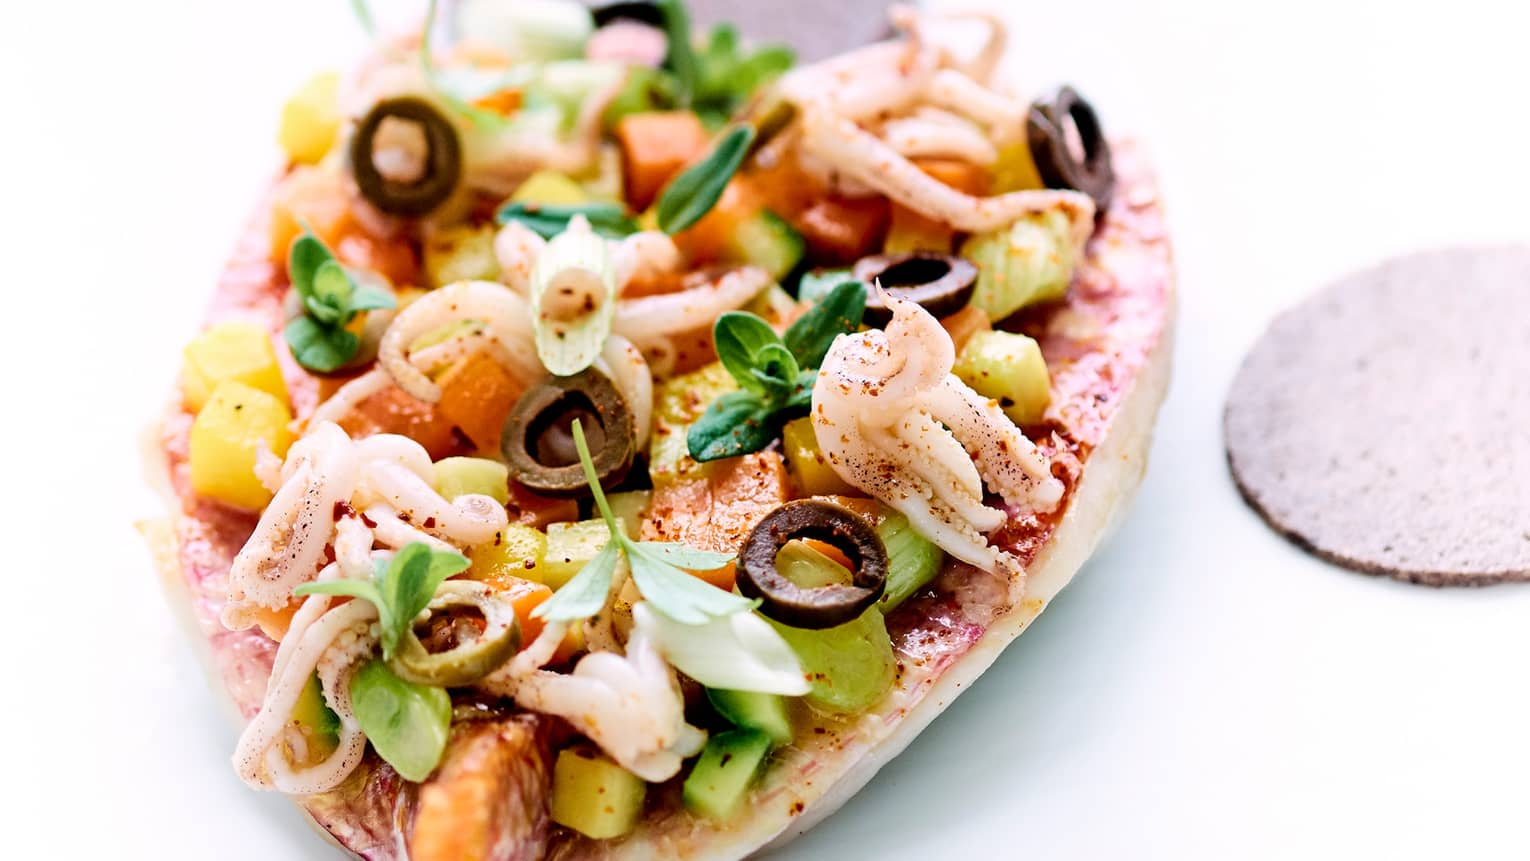 Close-up of fresh squid, seafood on bread with chopped vegetables, olives, sauce